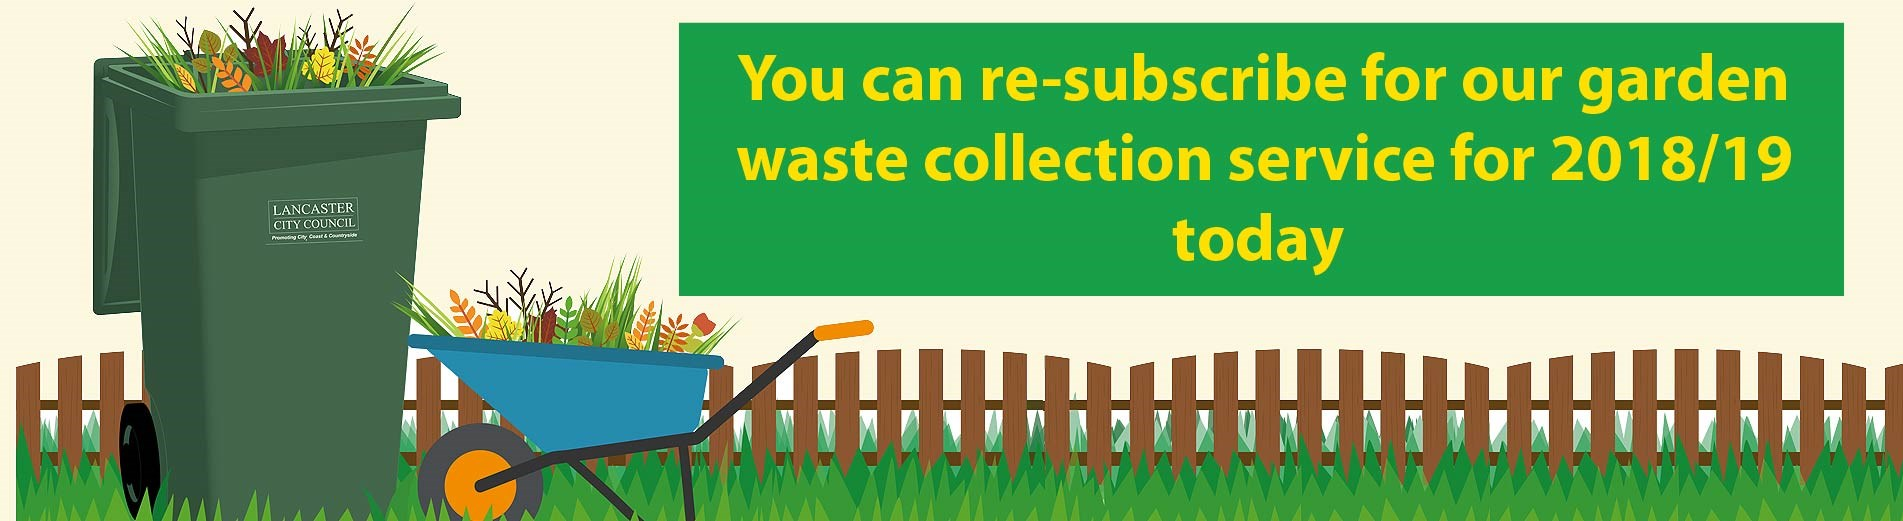 Renew your garden waste subscription for 2018/19